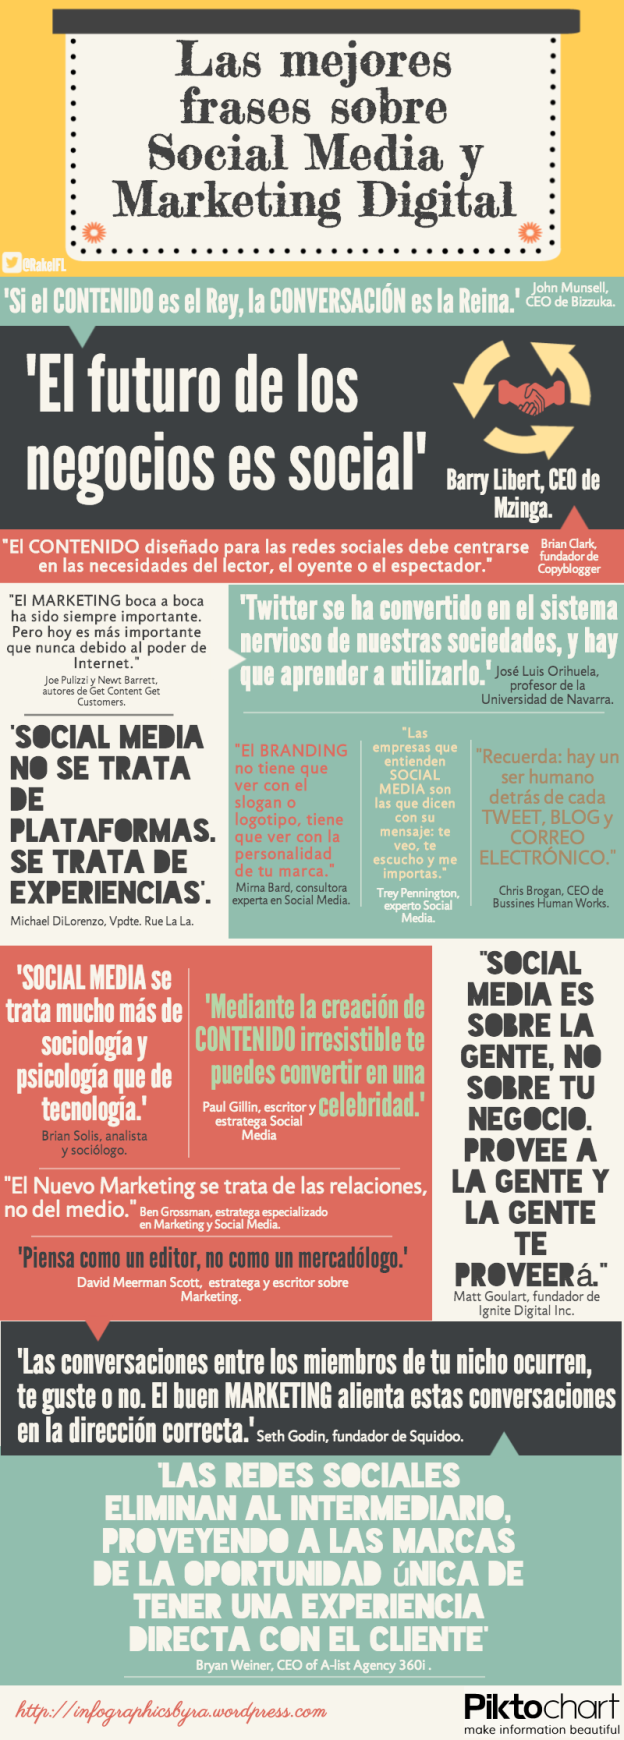 Las Mejores Frases sobre Social Media y Marketing Digital, by @RakelFL